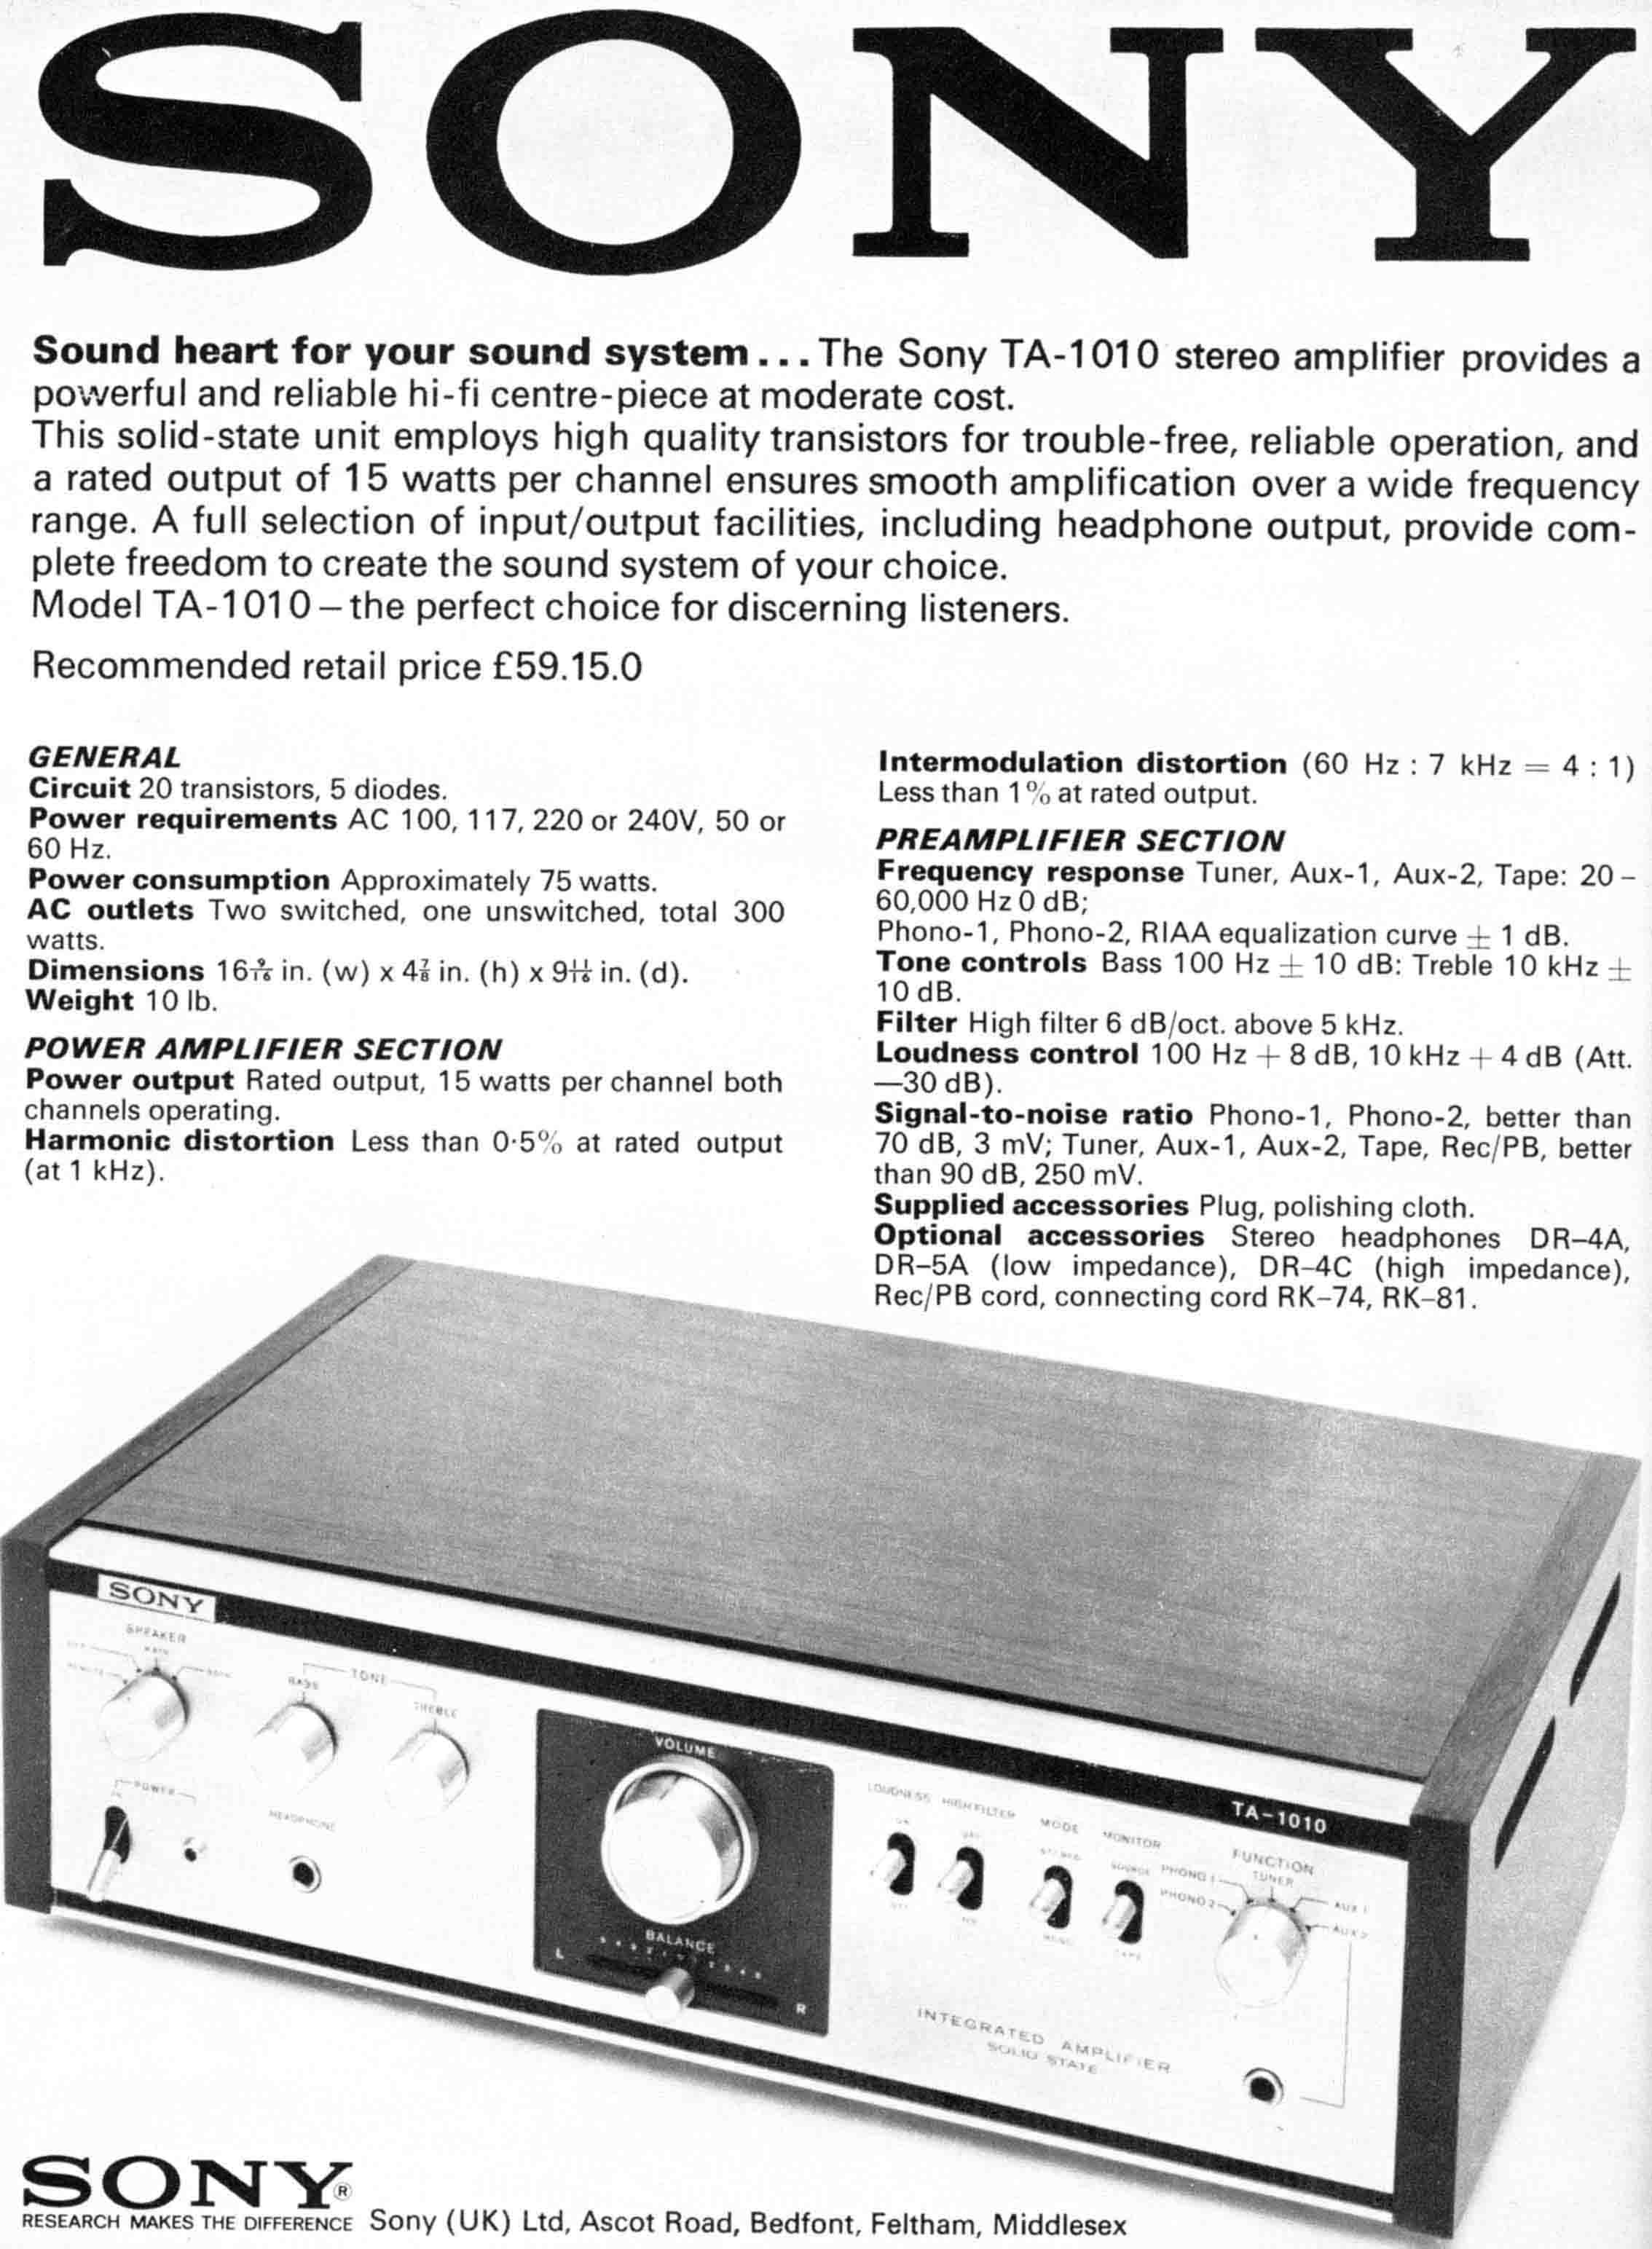 Sony TA-1010 Amplifier.